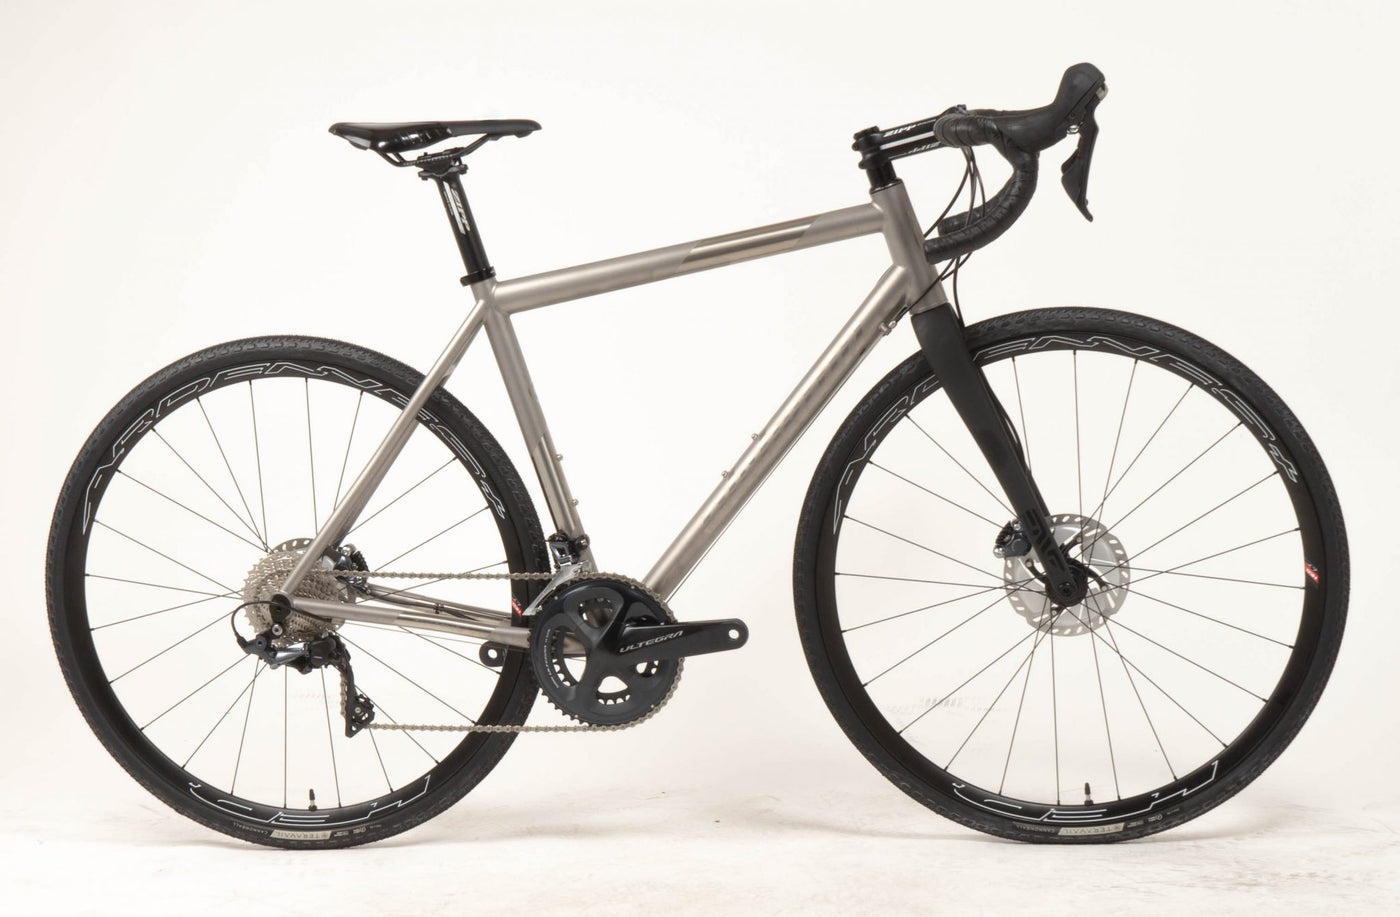 54cm Chiron Ultegra Mechanical Disc